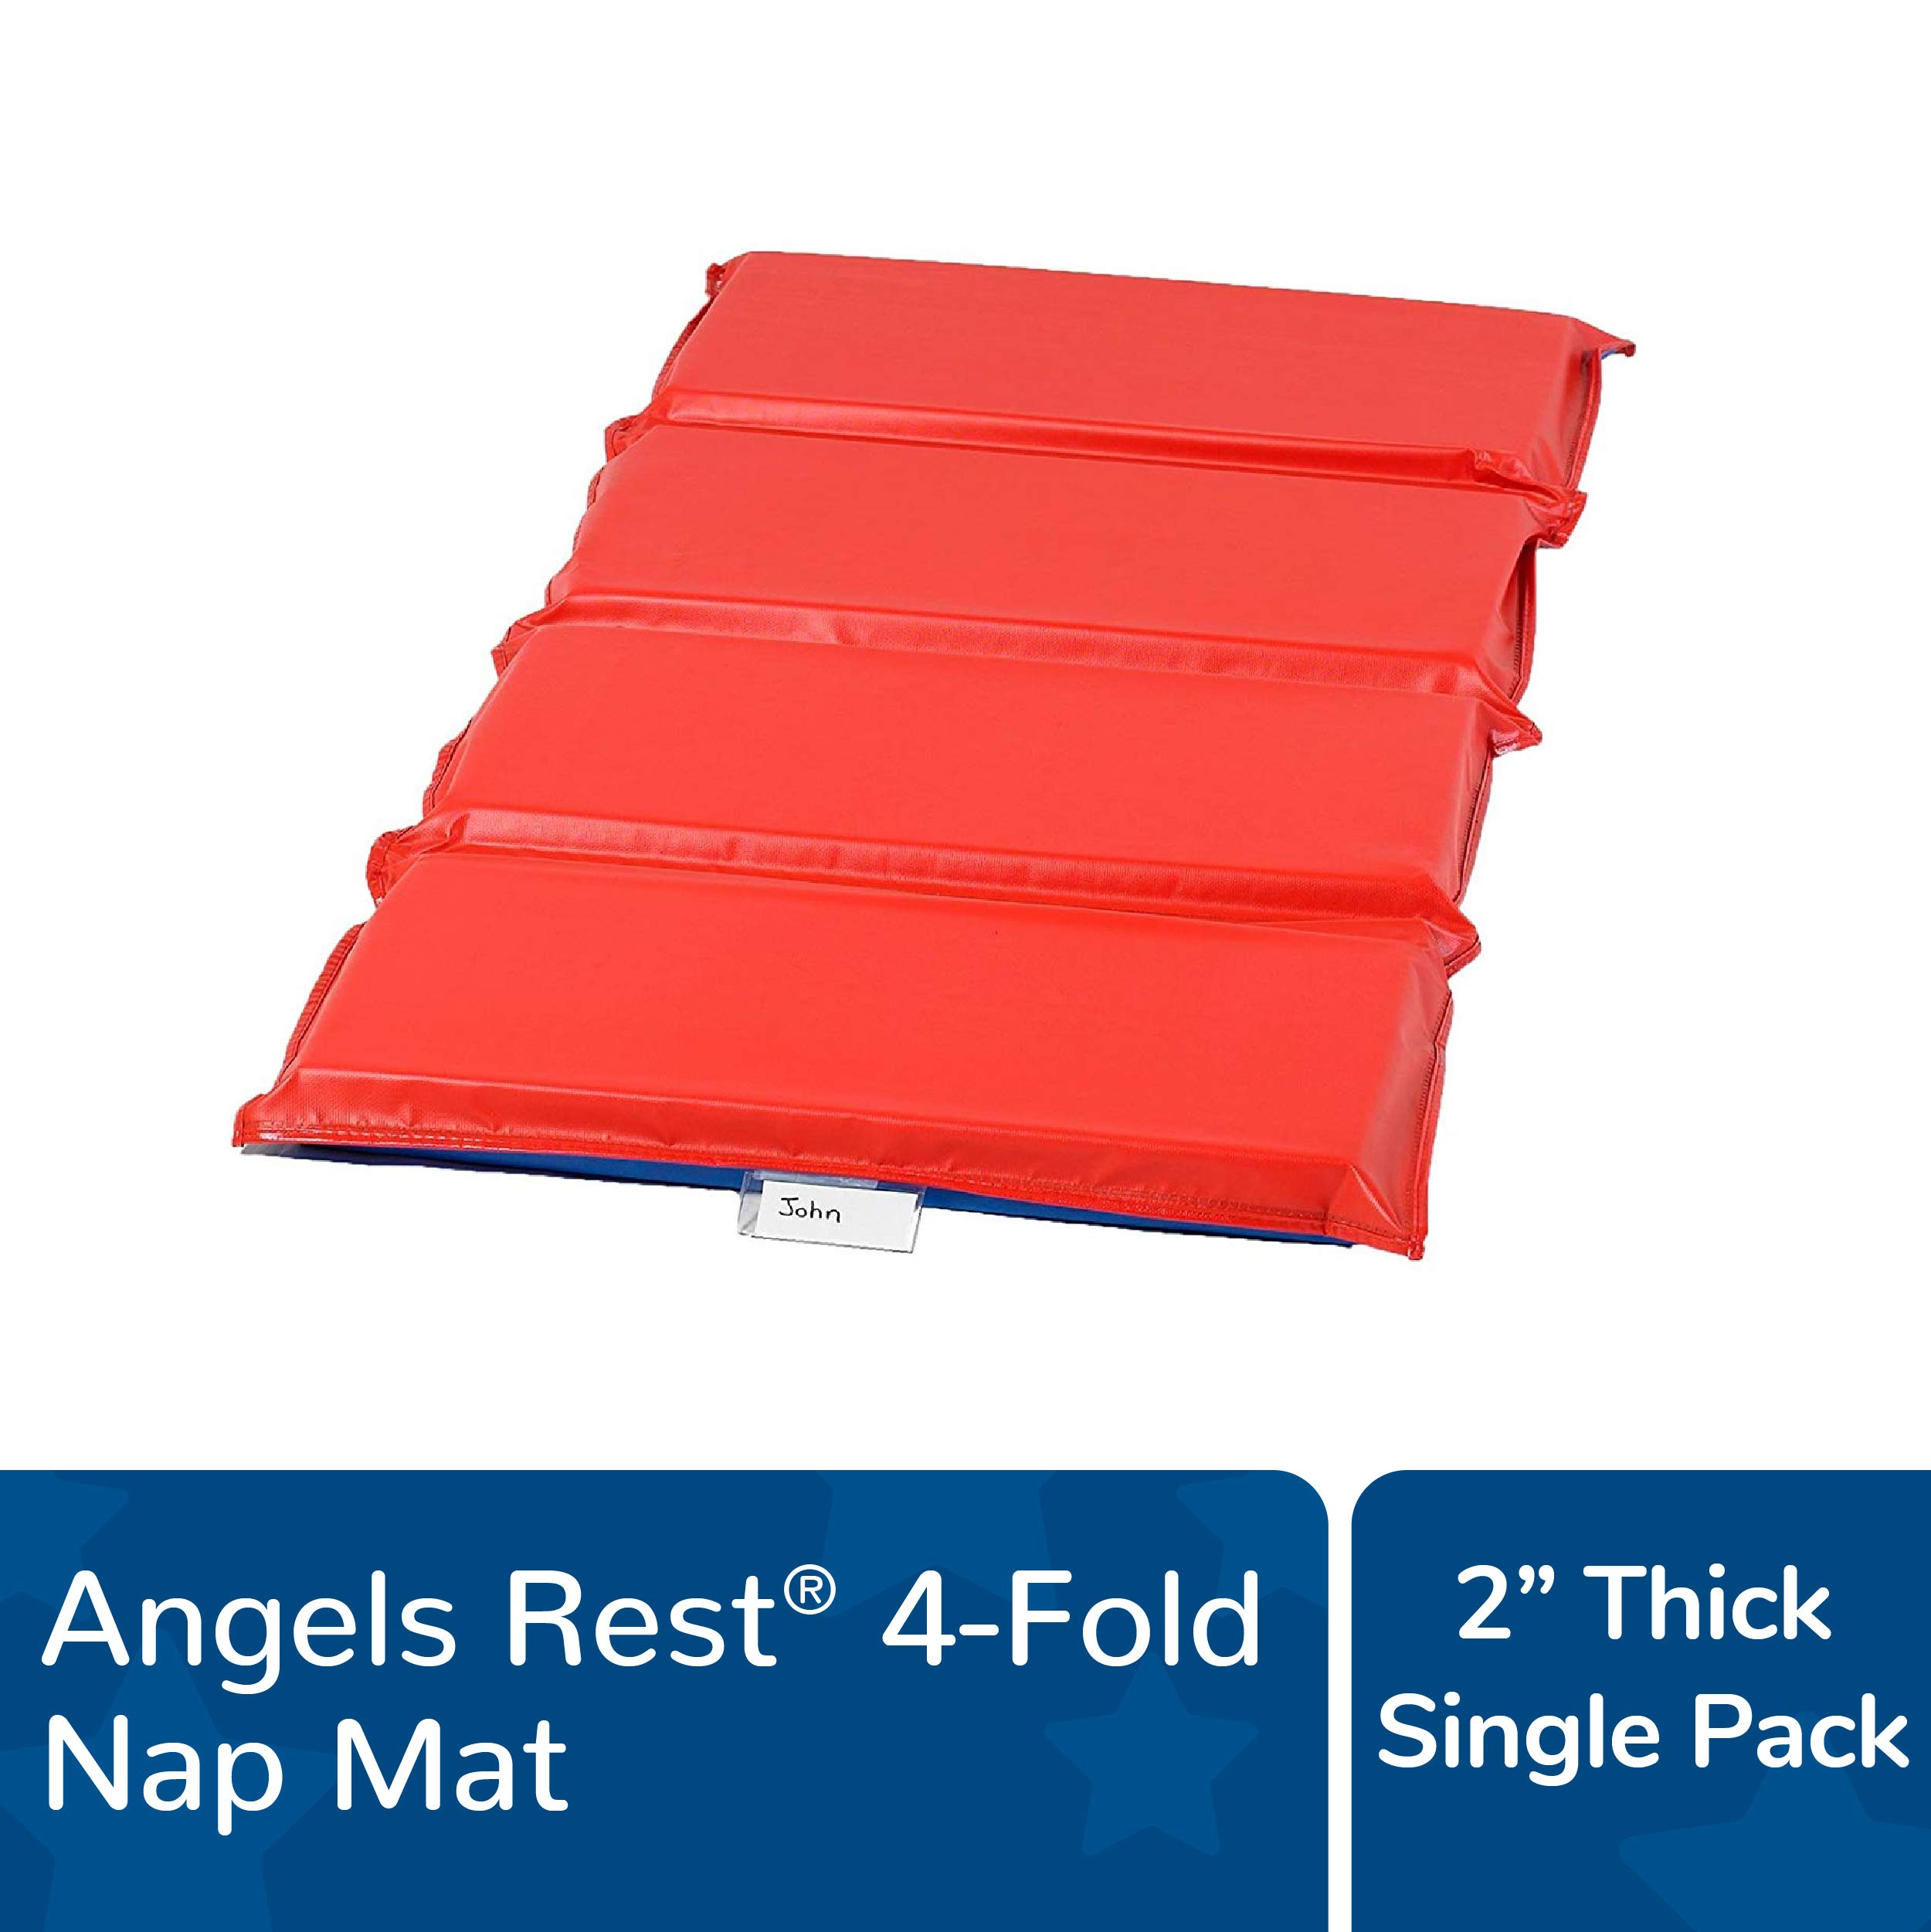 """Angeles Rest 2"""" Nap Mat, 4 Section Folding Sleeping Mats for Kids/Toddlers Daycare, Bacteria-Resistant Waterproof Seams, Homeschool/Classroom Rest Mat"""